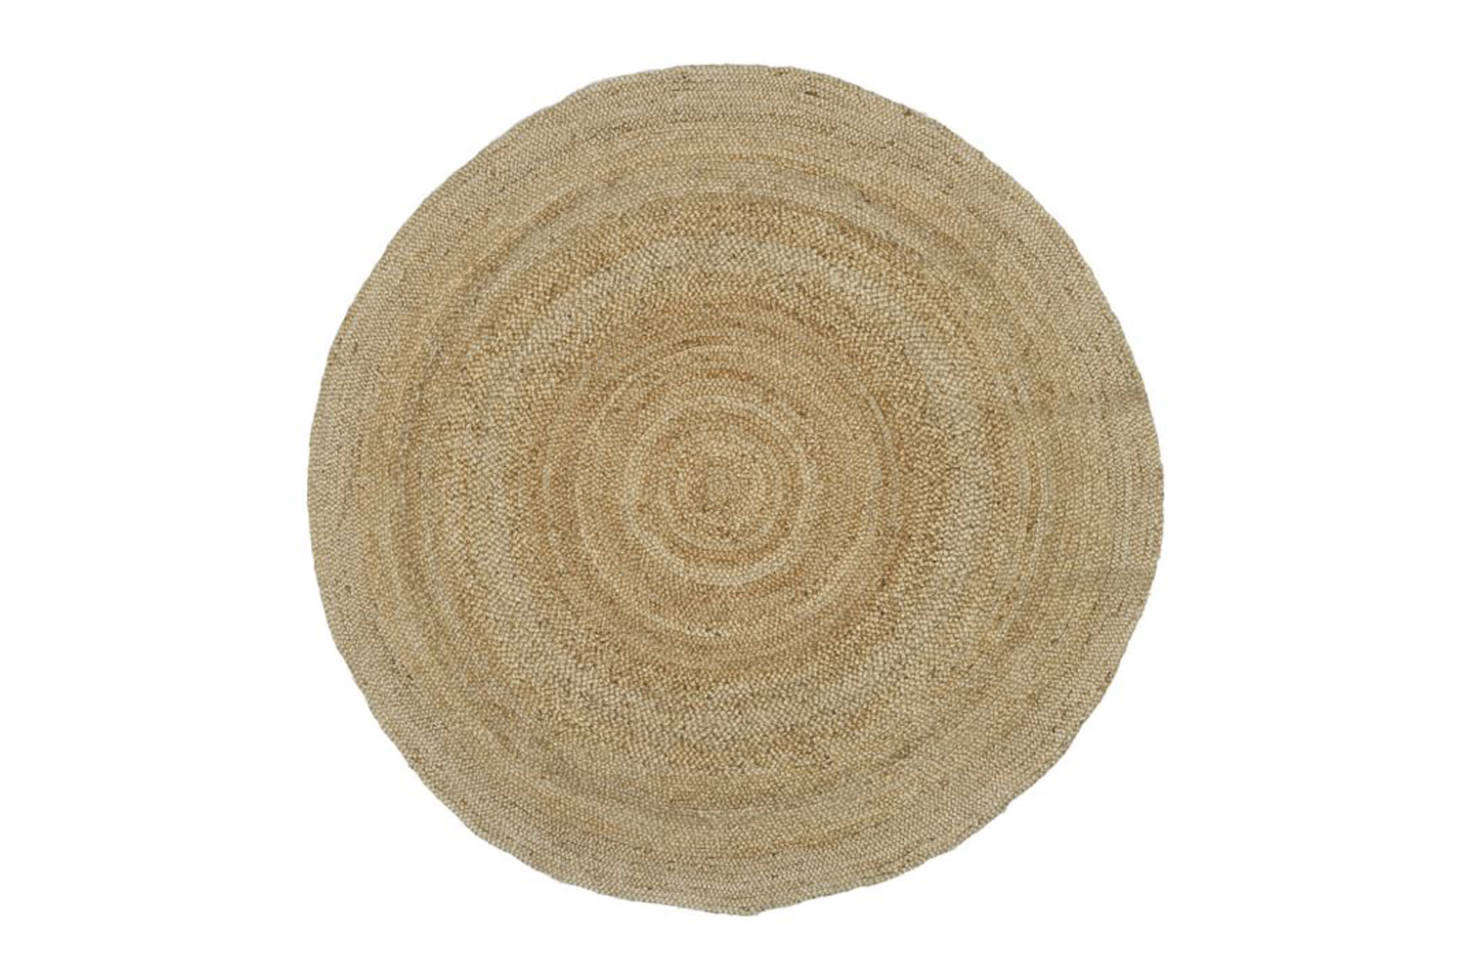 The Pottery Barn 8-Foot Round Jute Rug in Natural is $179.